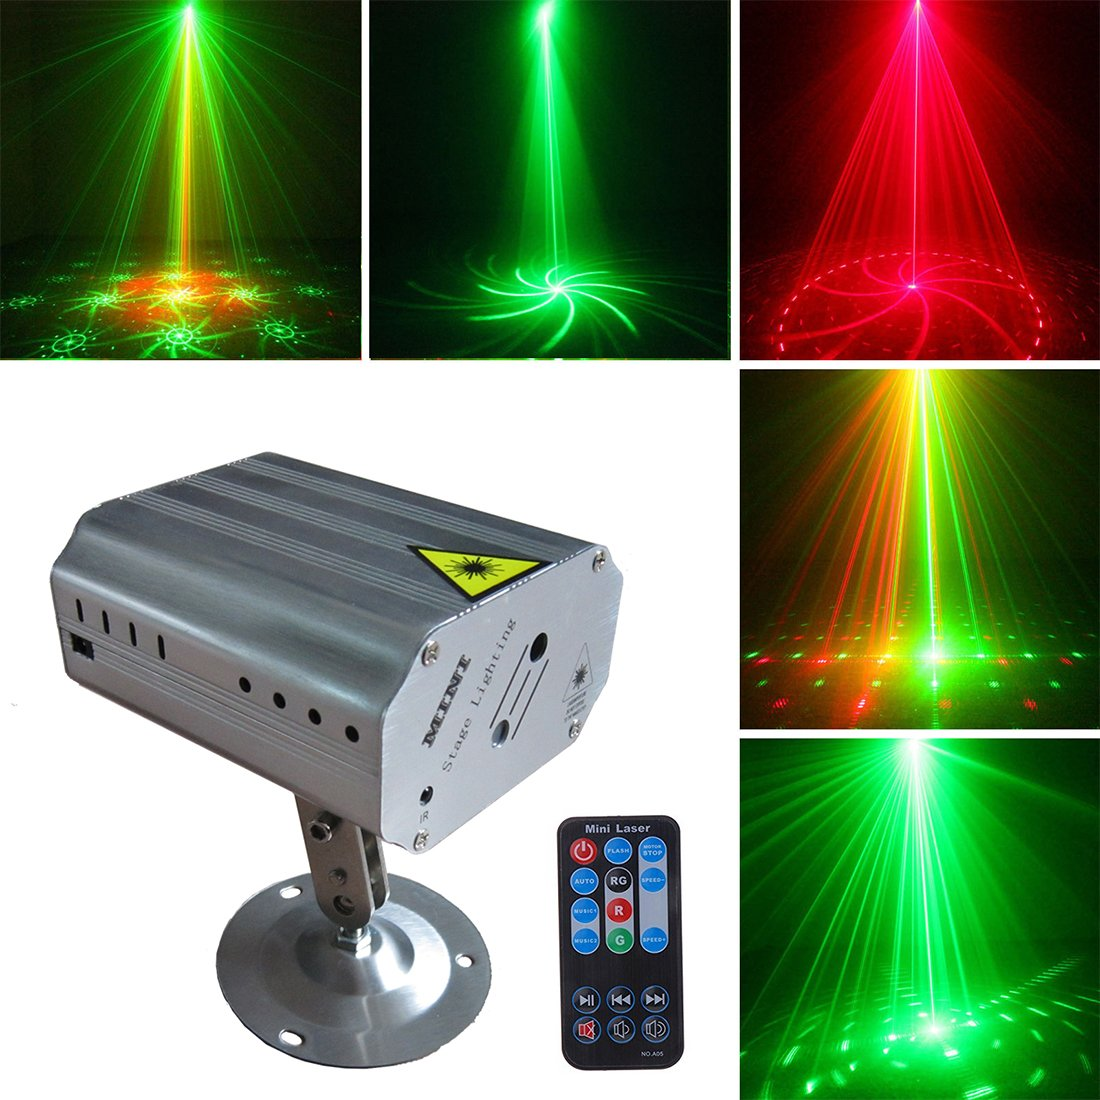 Shop amazon stage lights party lights dj disco stage lights sbolight led projector karaoke strobe perform for stage lighting with aloadofball Images